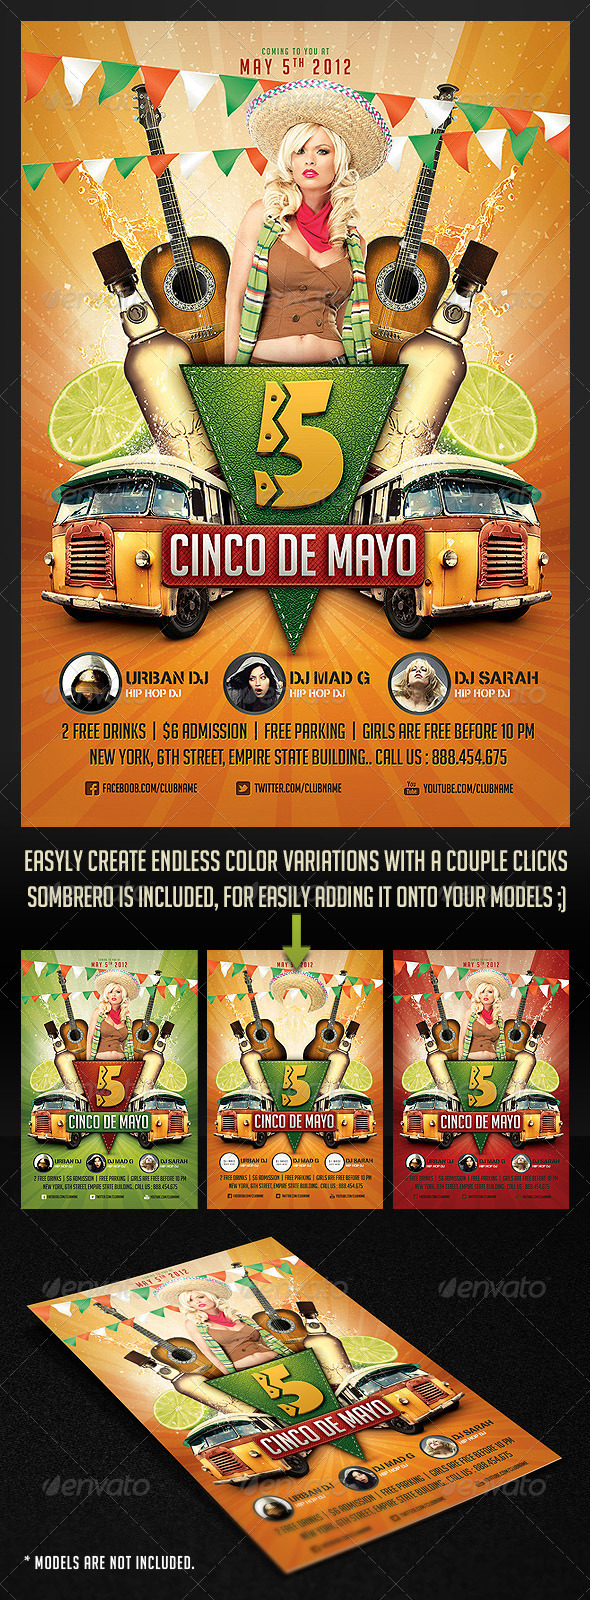 Graphic River Cinco de Mayo Party Flyer 2 Print Templates -  Flyers  Events  Holidays 2129568